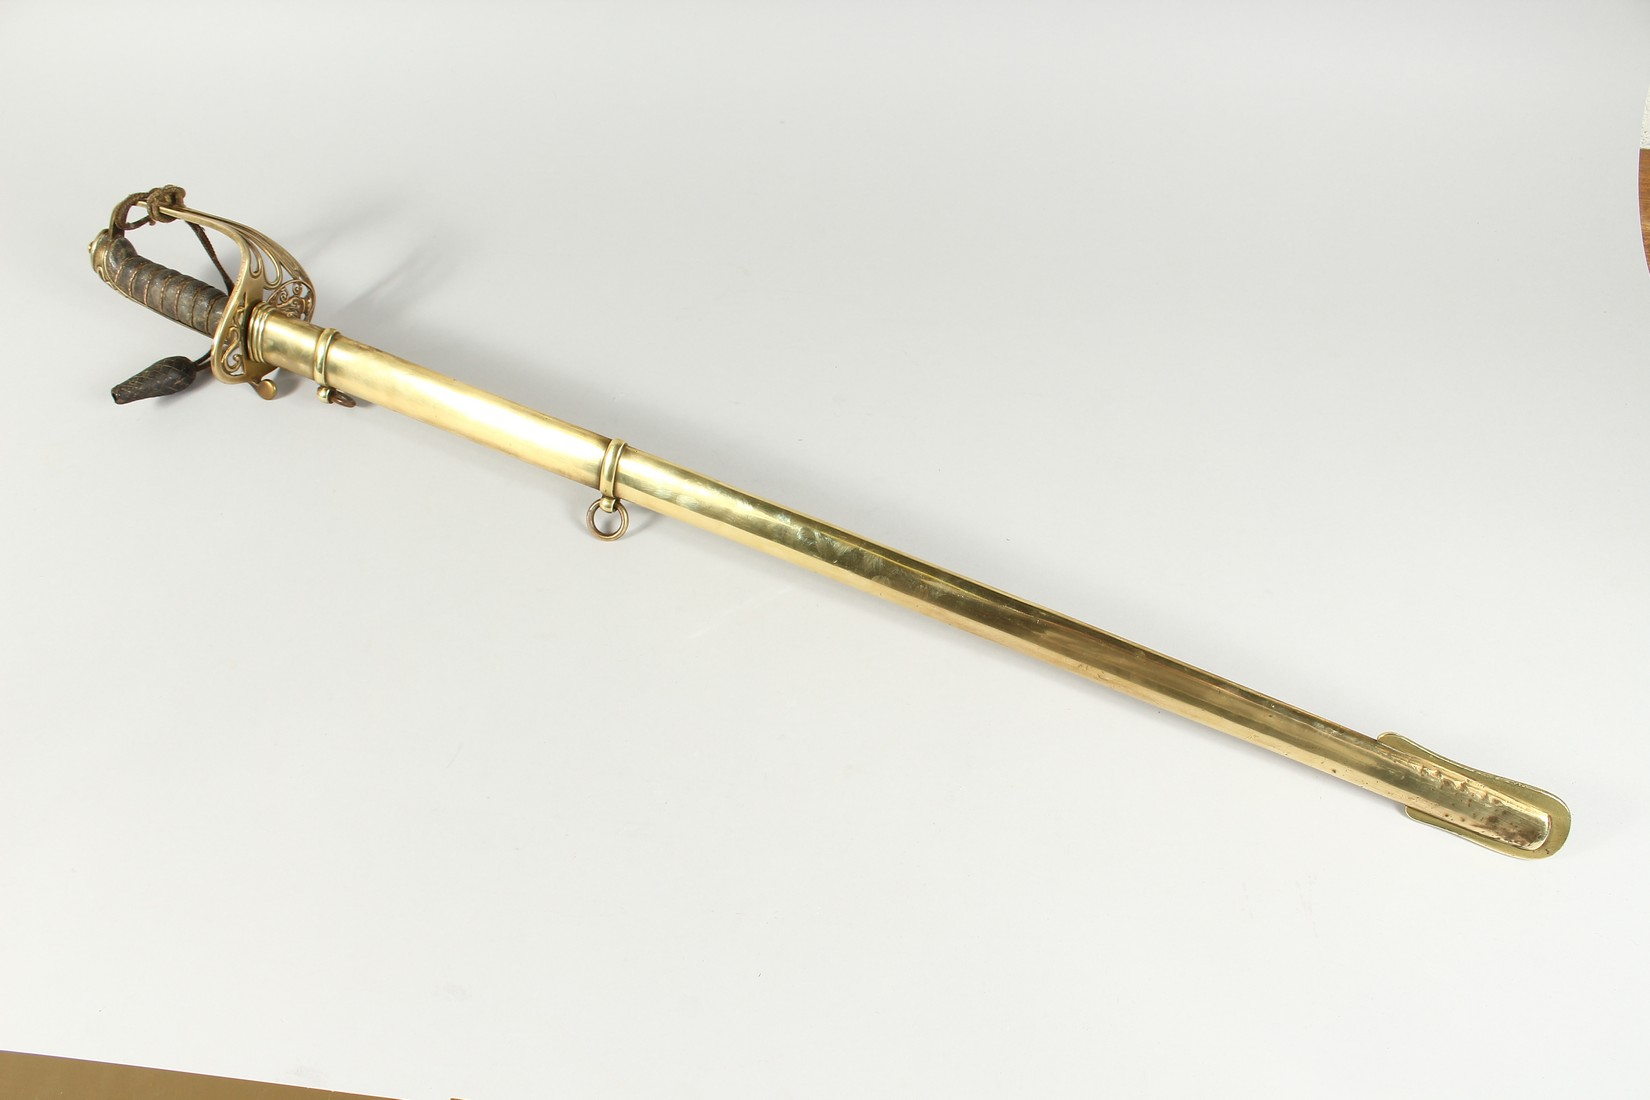 A GOOD VICTORIAN NAVAL SWORD with shagreen handle and engraved blade, V R & Crown inc., brown - Image 9 of 25